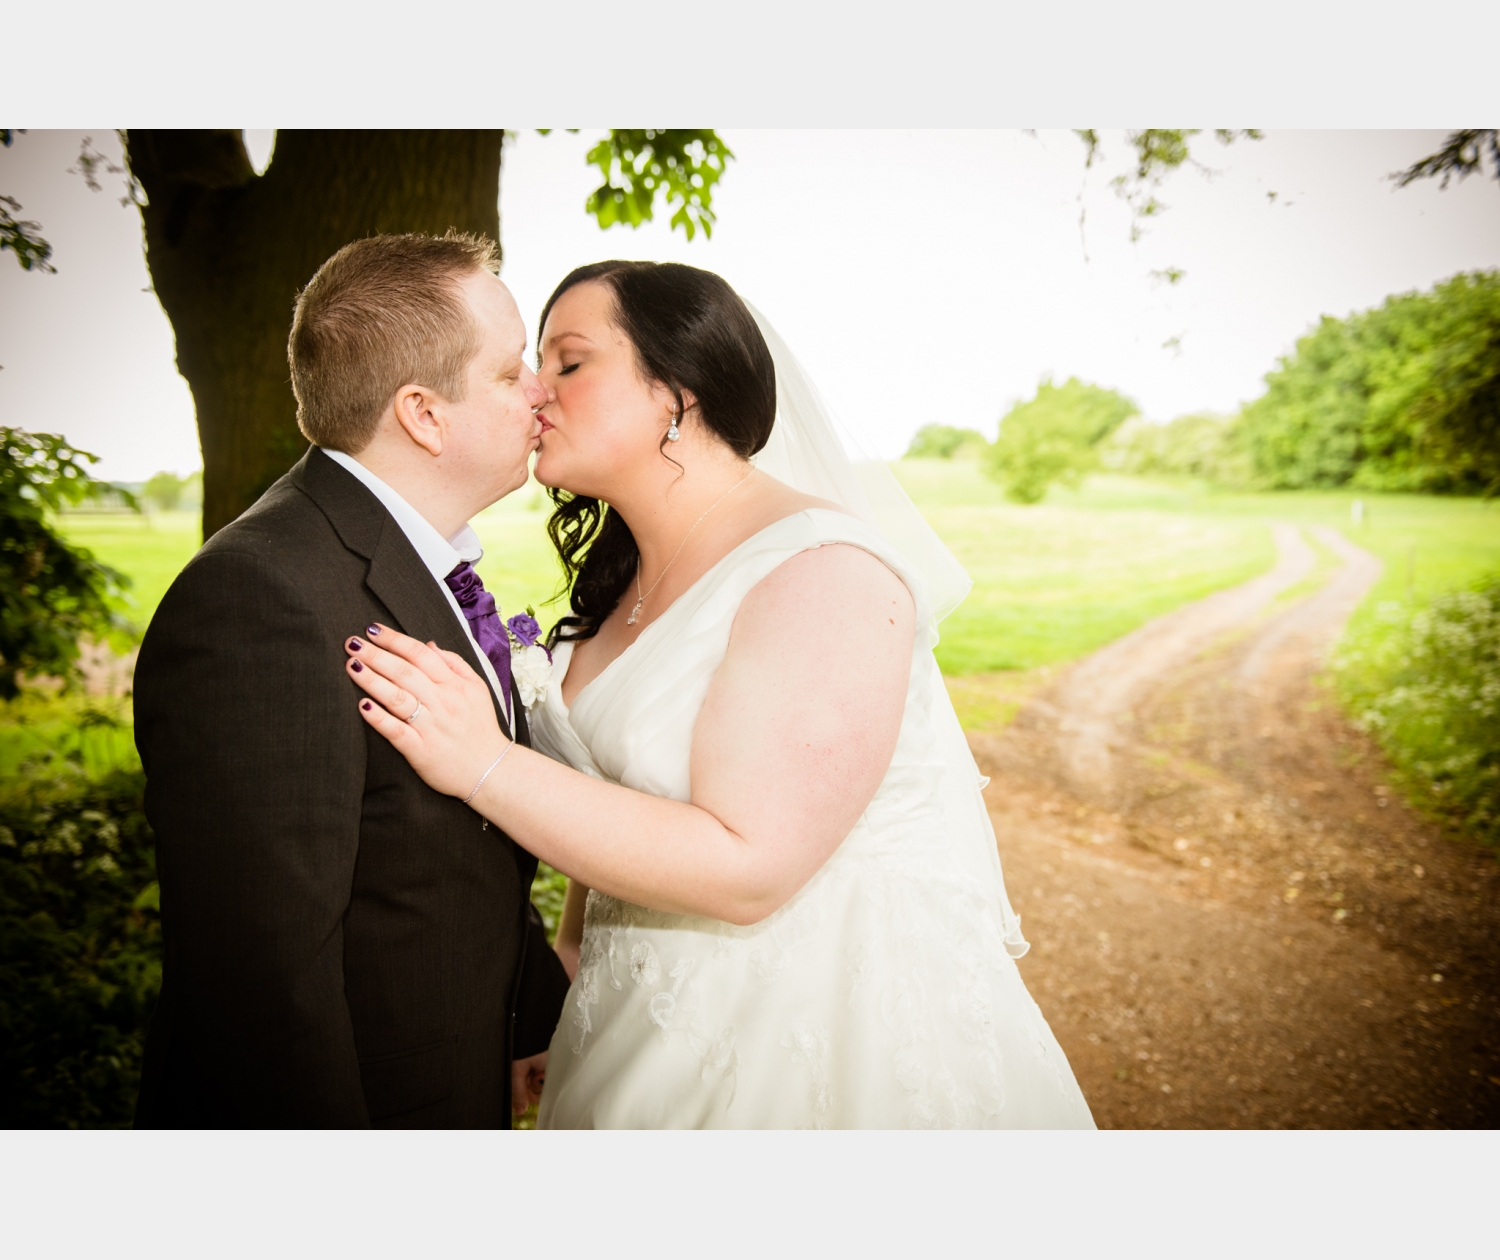 Herts Wedding Photography